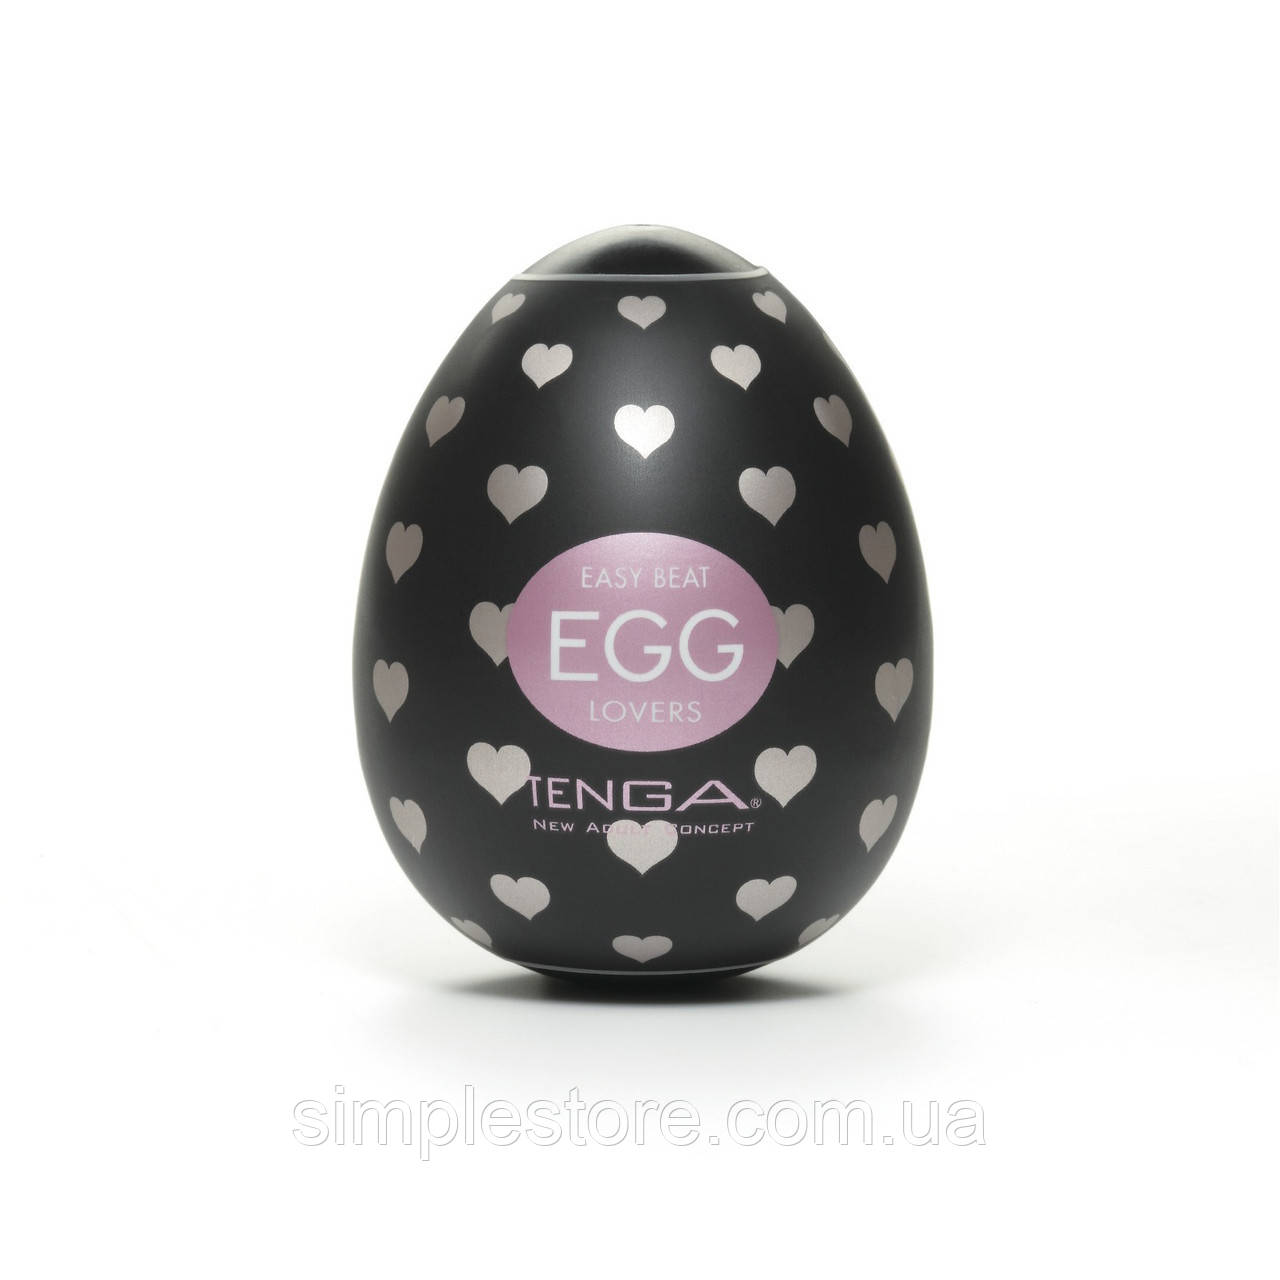 Мастурбатор Tenga Egg Lovers